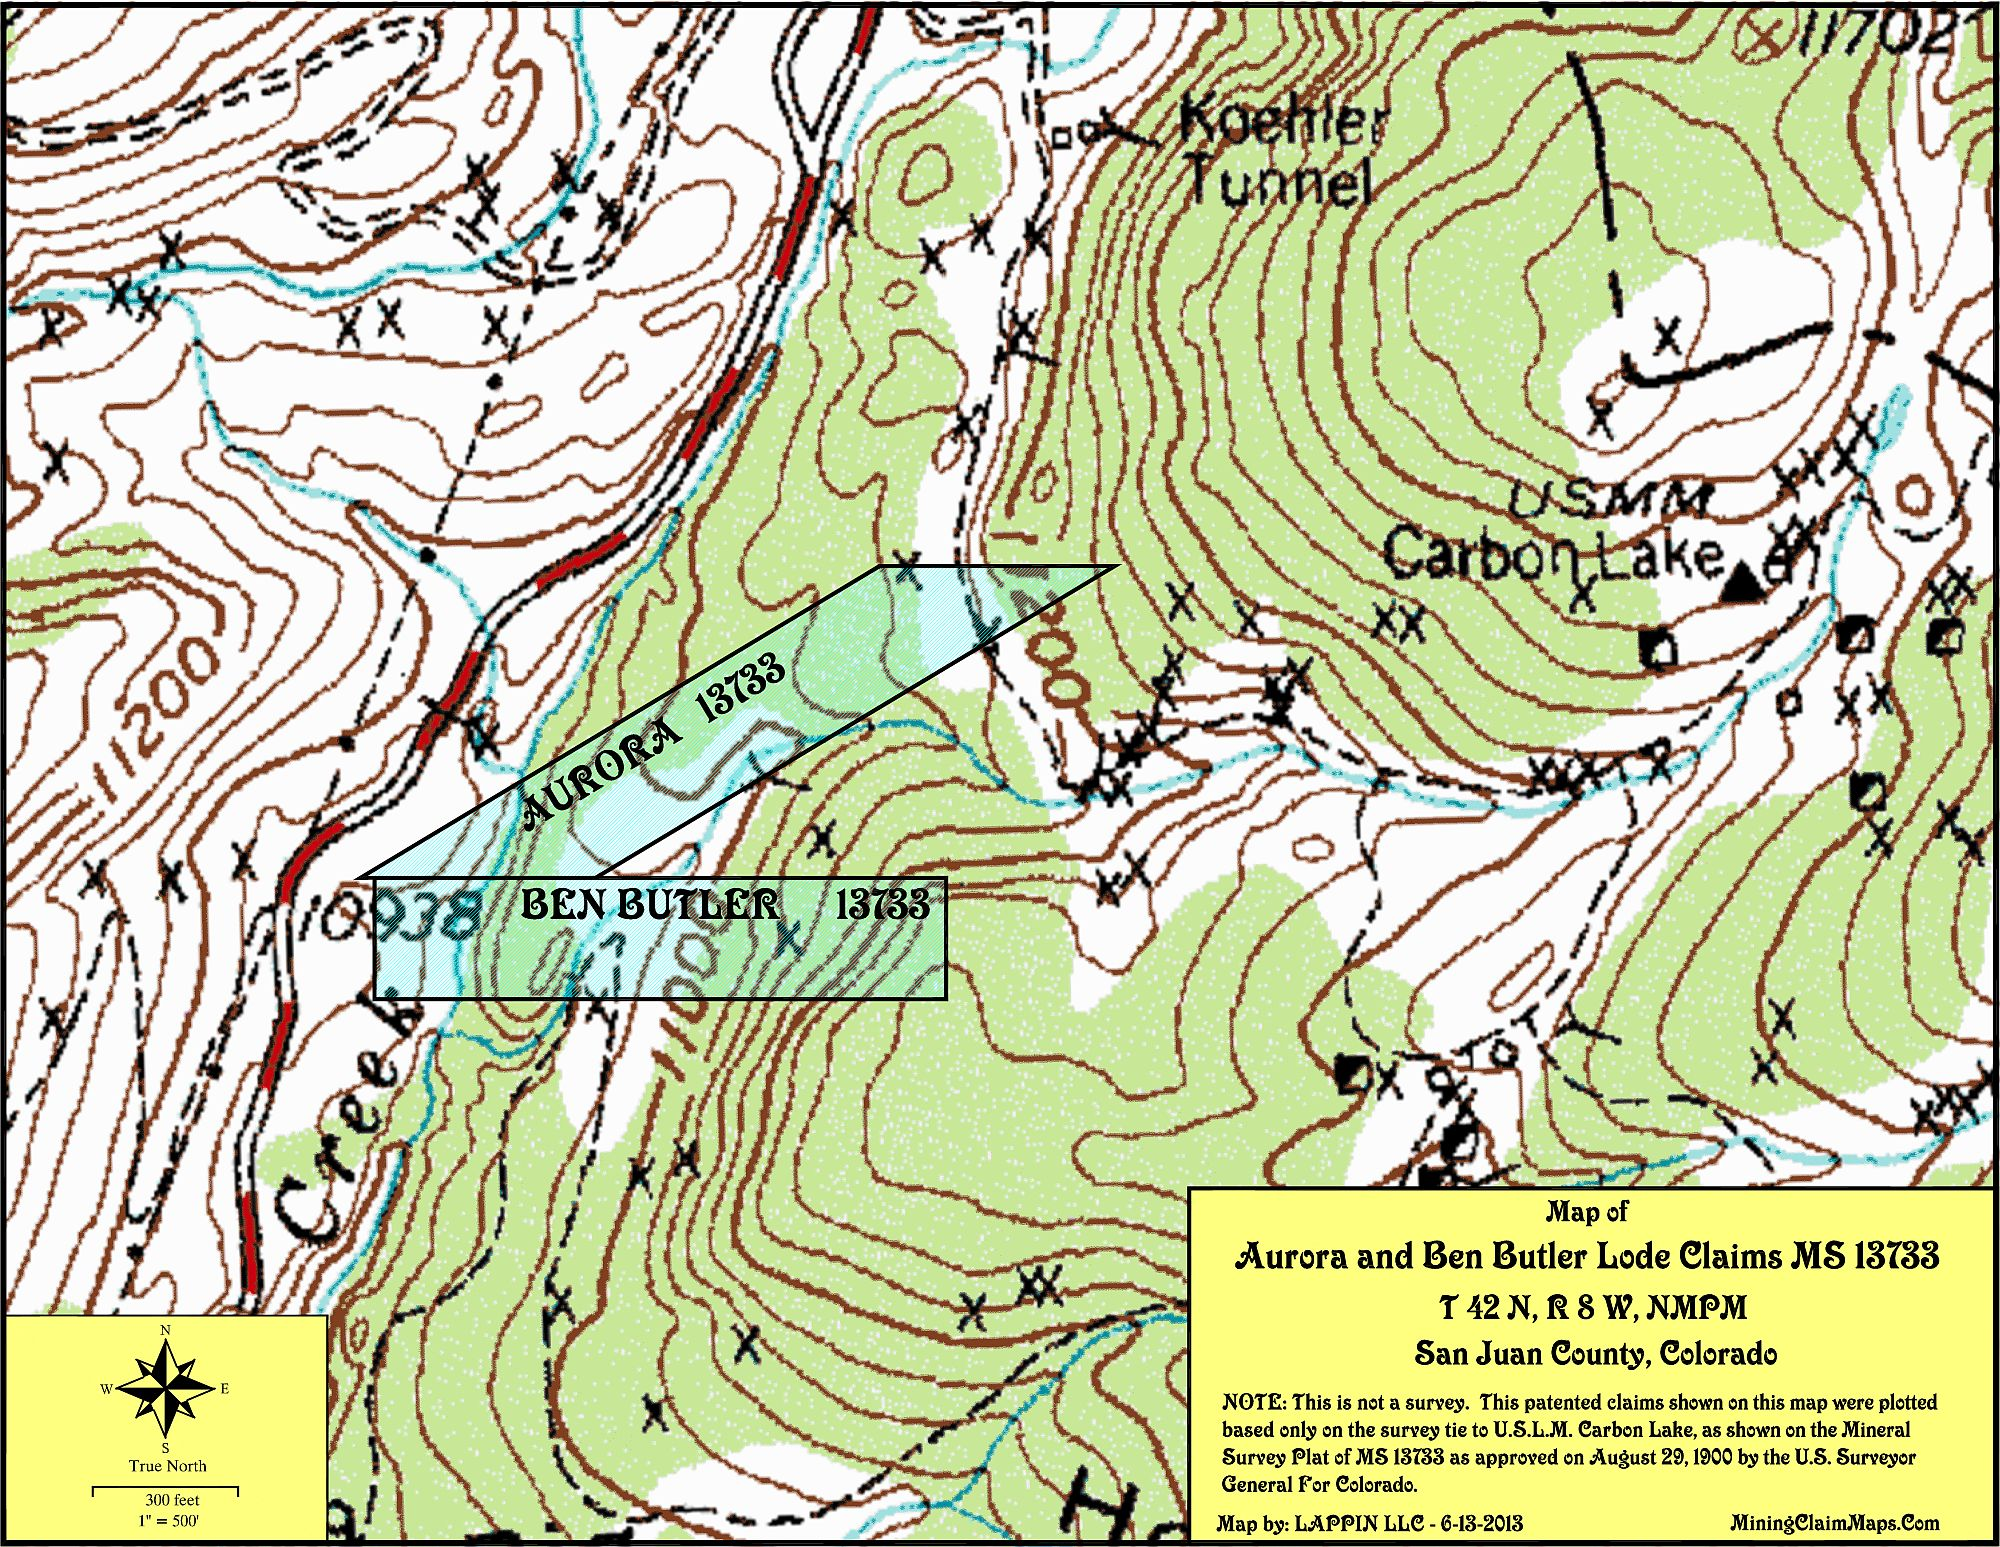 Professional Mapping of Mining Claims and Real Estate on